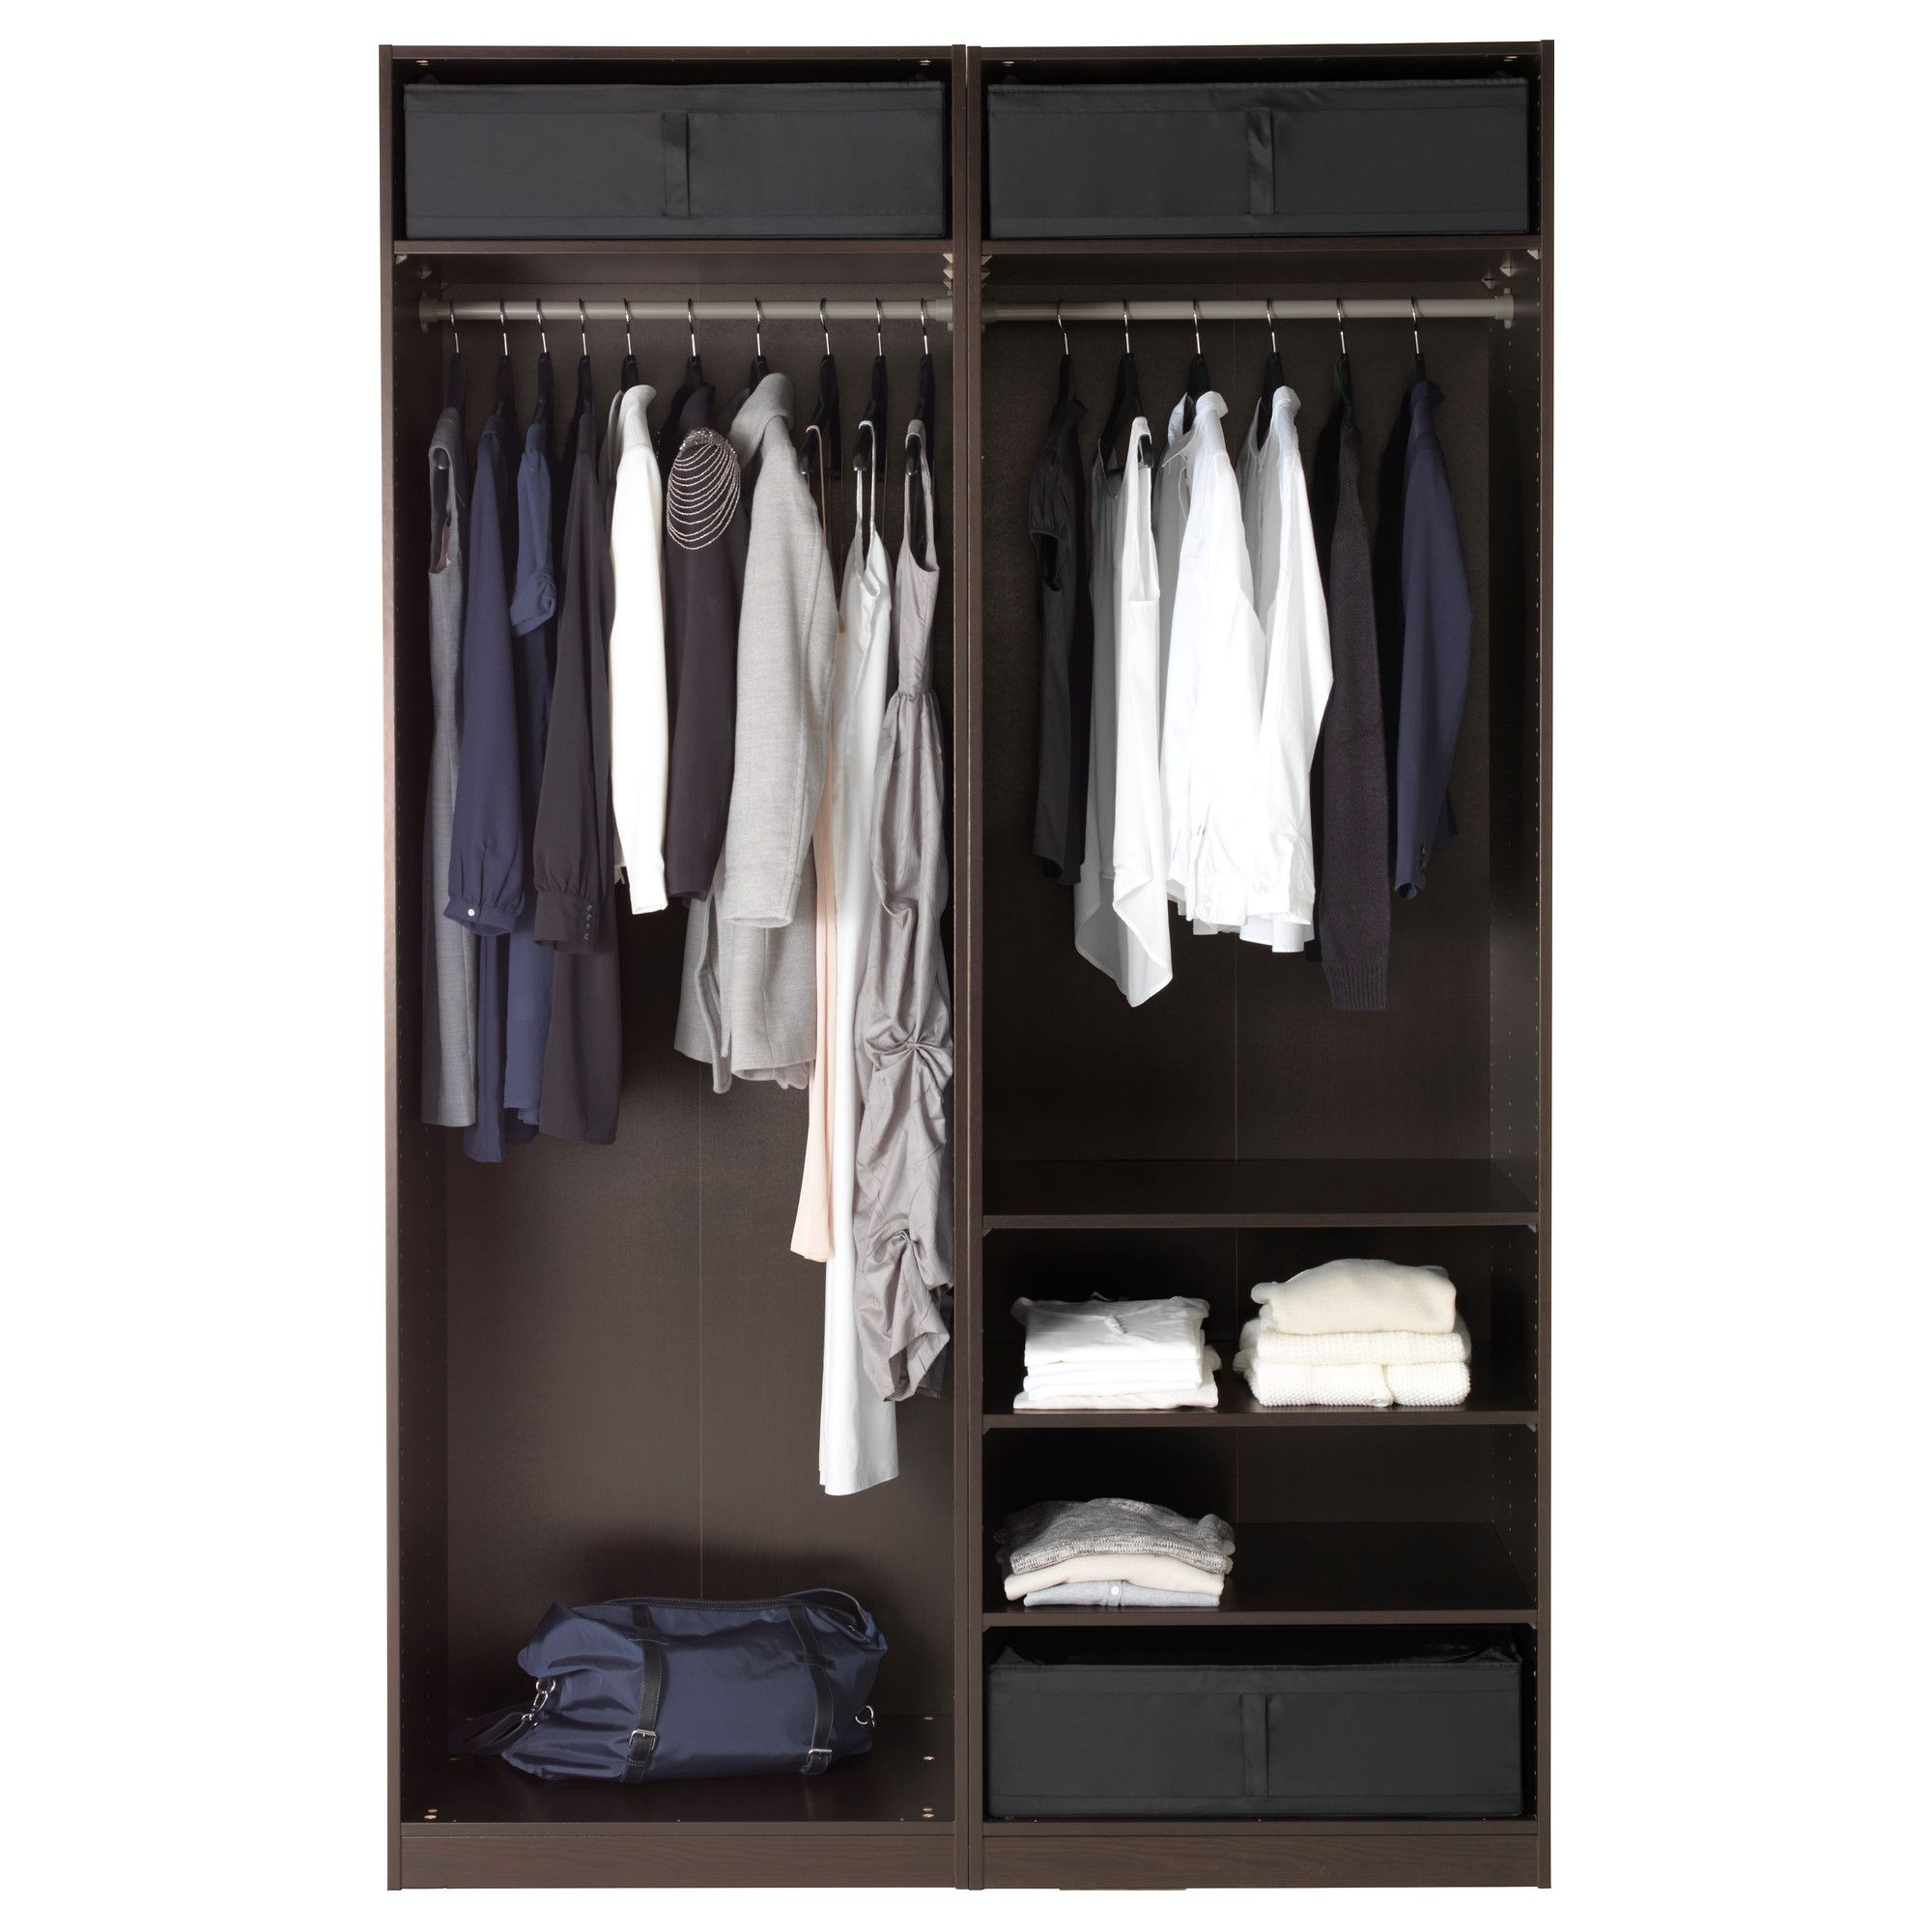 Pax Mehamn Ikea Pax Wardrobe Black Brown Mehamn White In 2019 Products